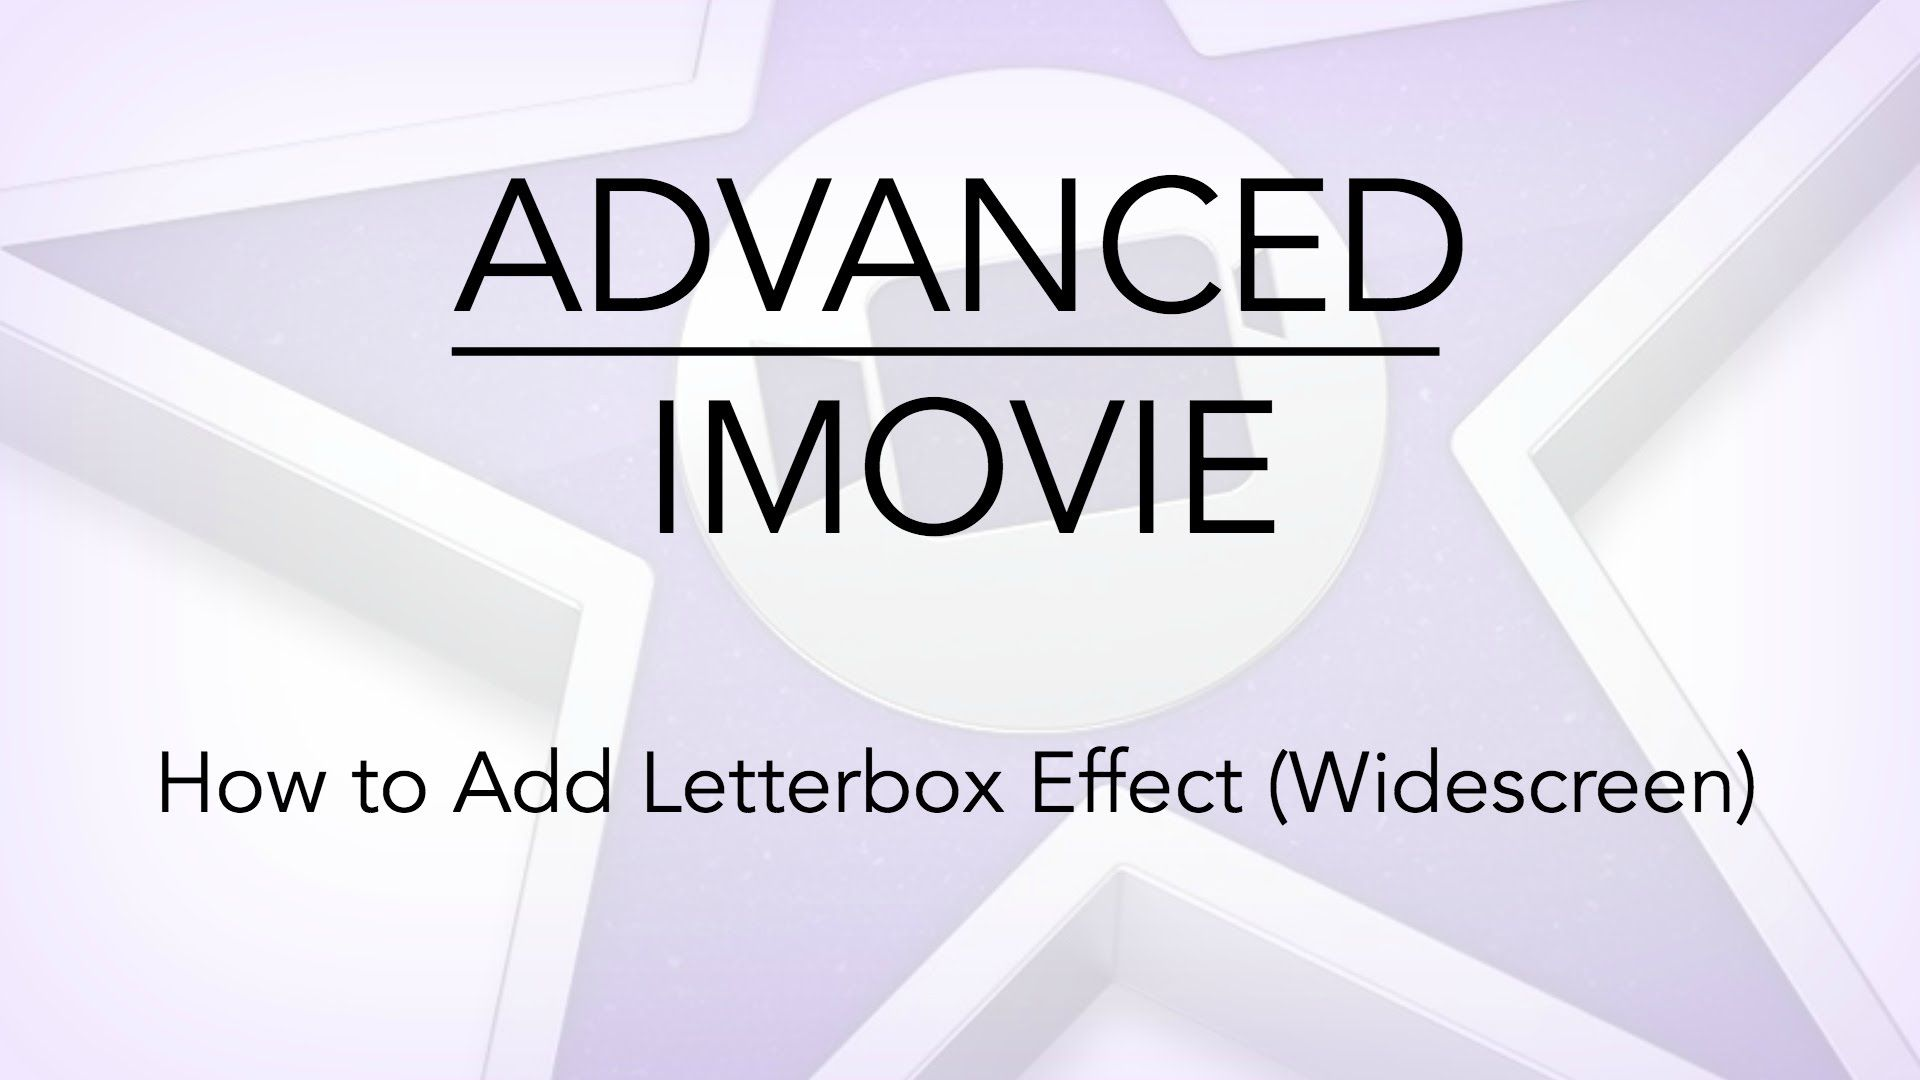 Advanced imovie how to add letterbox effect widescreen imovie advanced imovie how to add letterbox effect widescreen spiritdancerdesigns Image collections